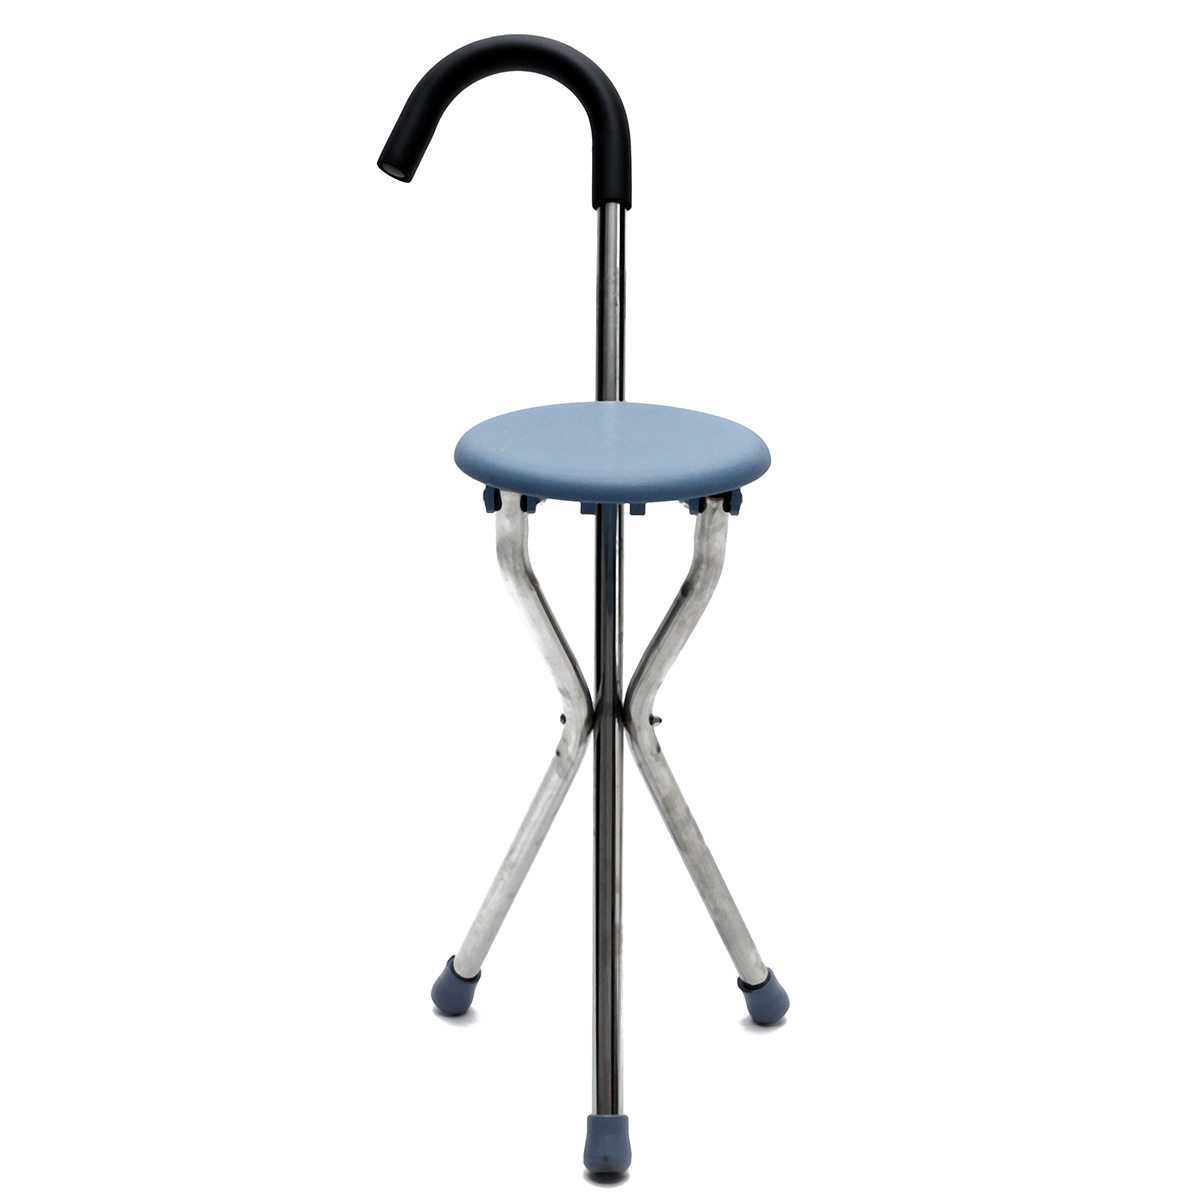 folding floor chair australia bedroom chaise lounge chairs ipree outdoor travel stool portable cane walking stick seat camping hiking picnic ...